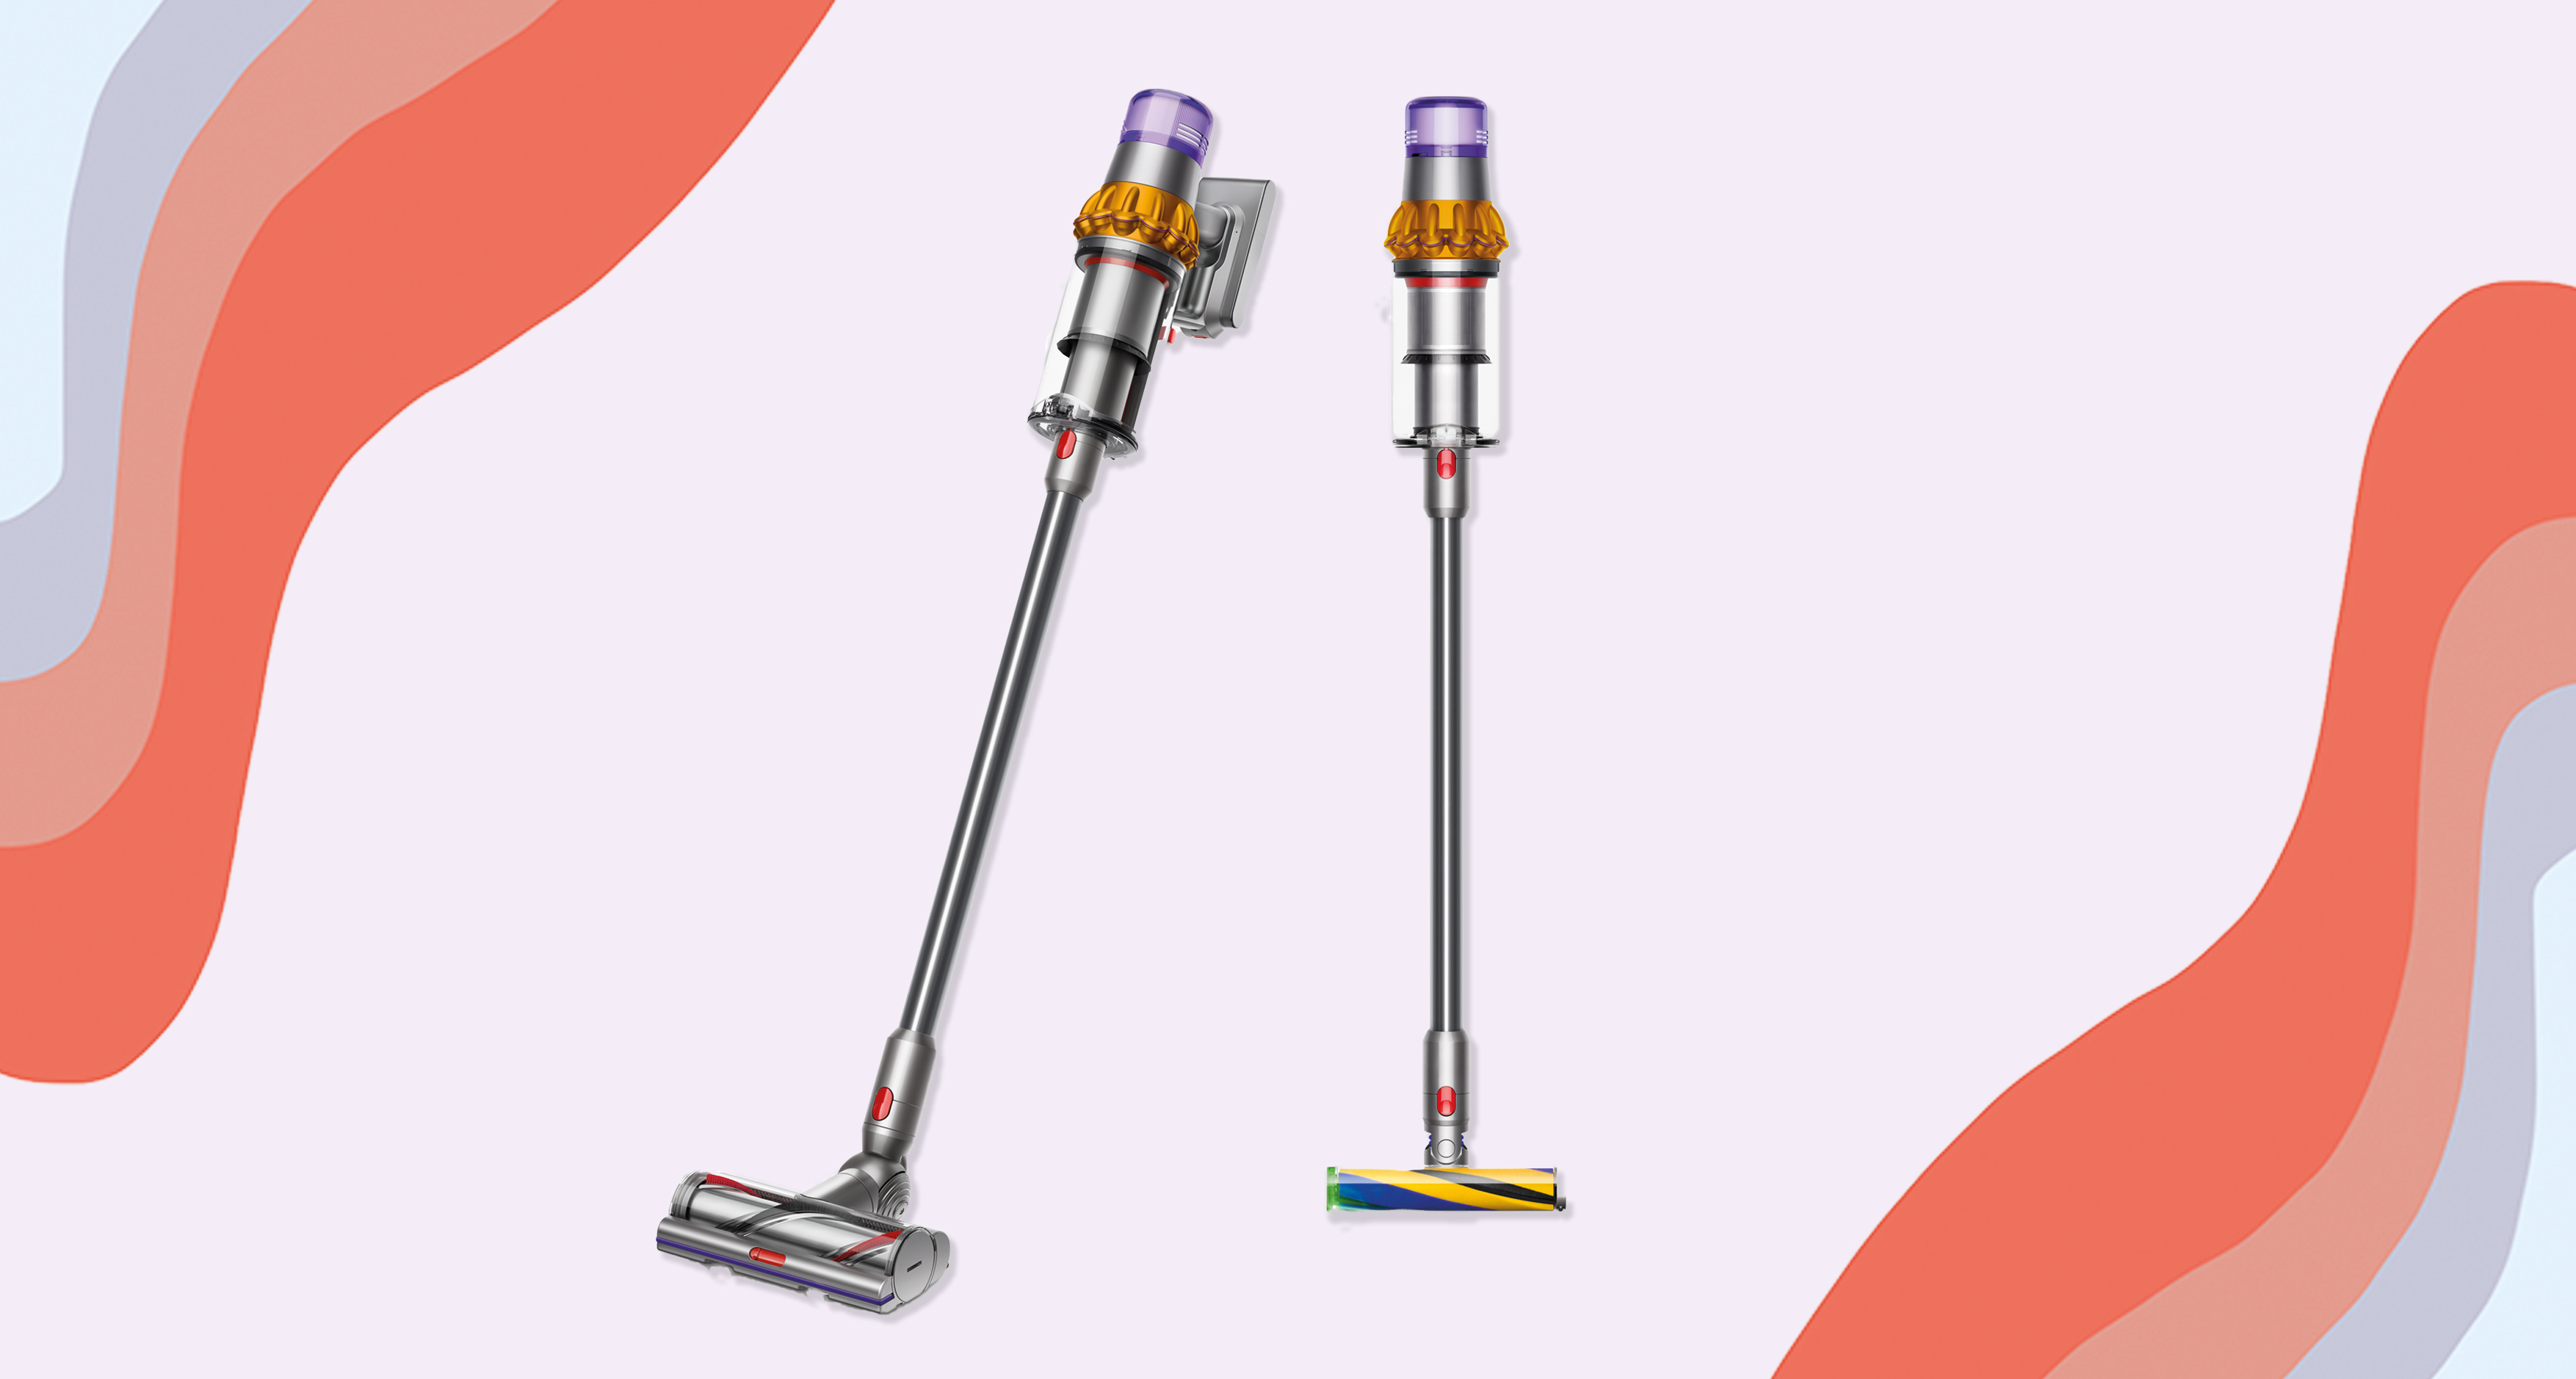 Dyson Just Launched 3 New Vacuums With Super High-Tech Features